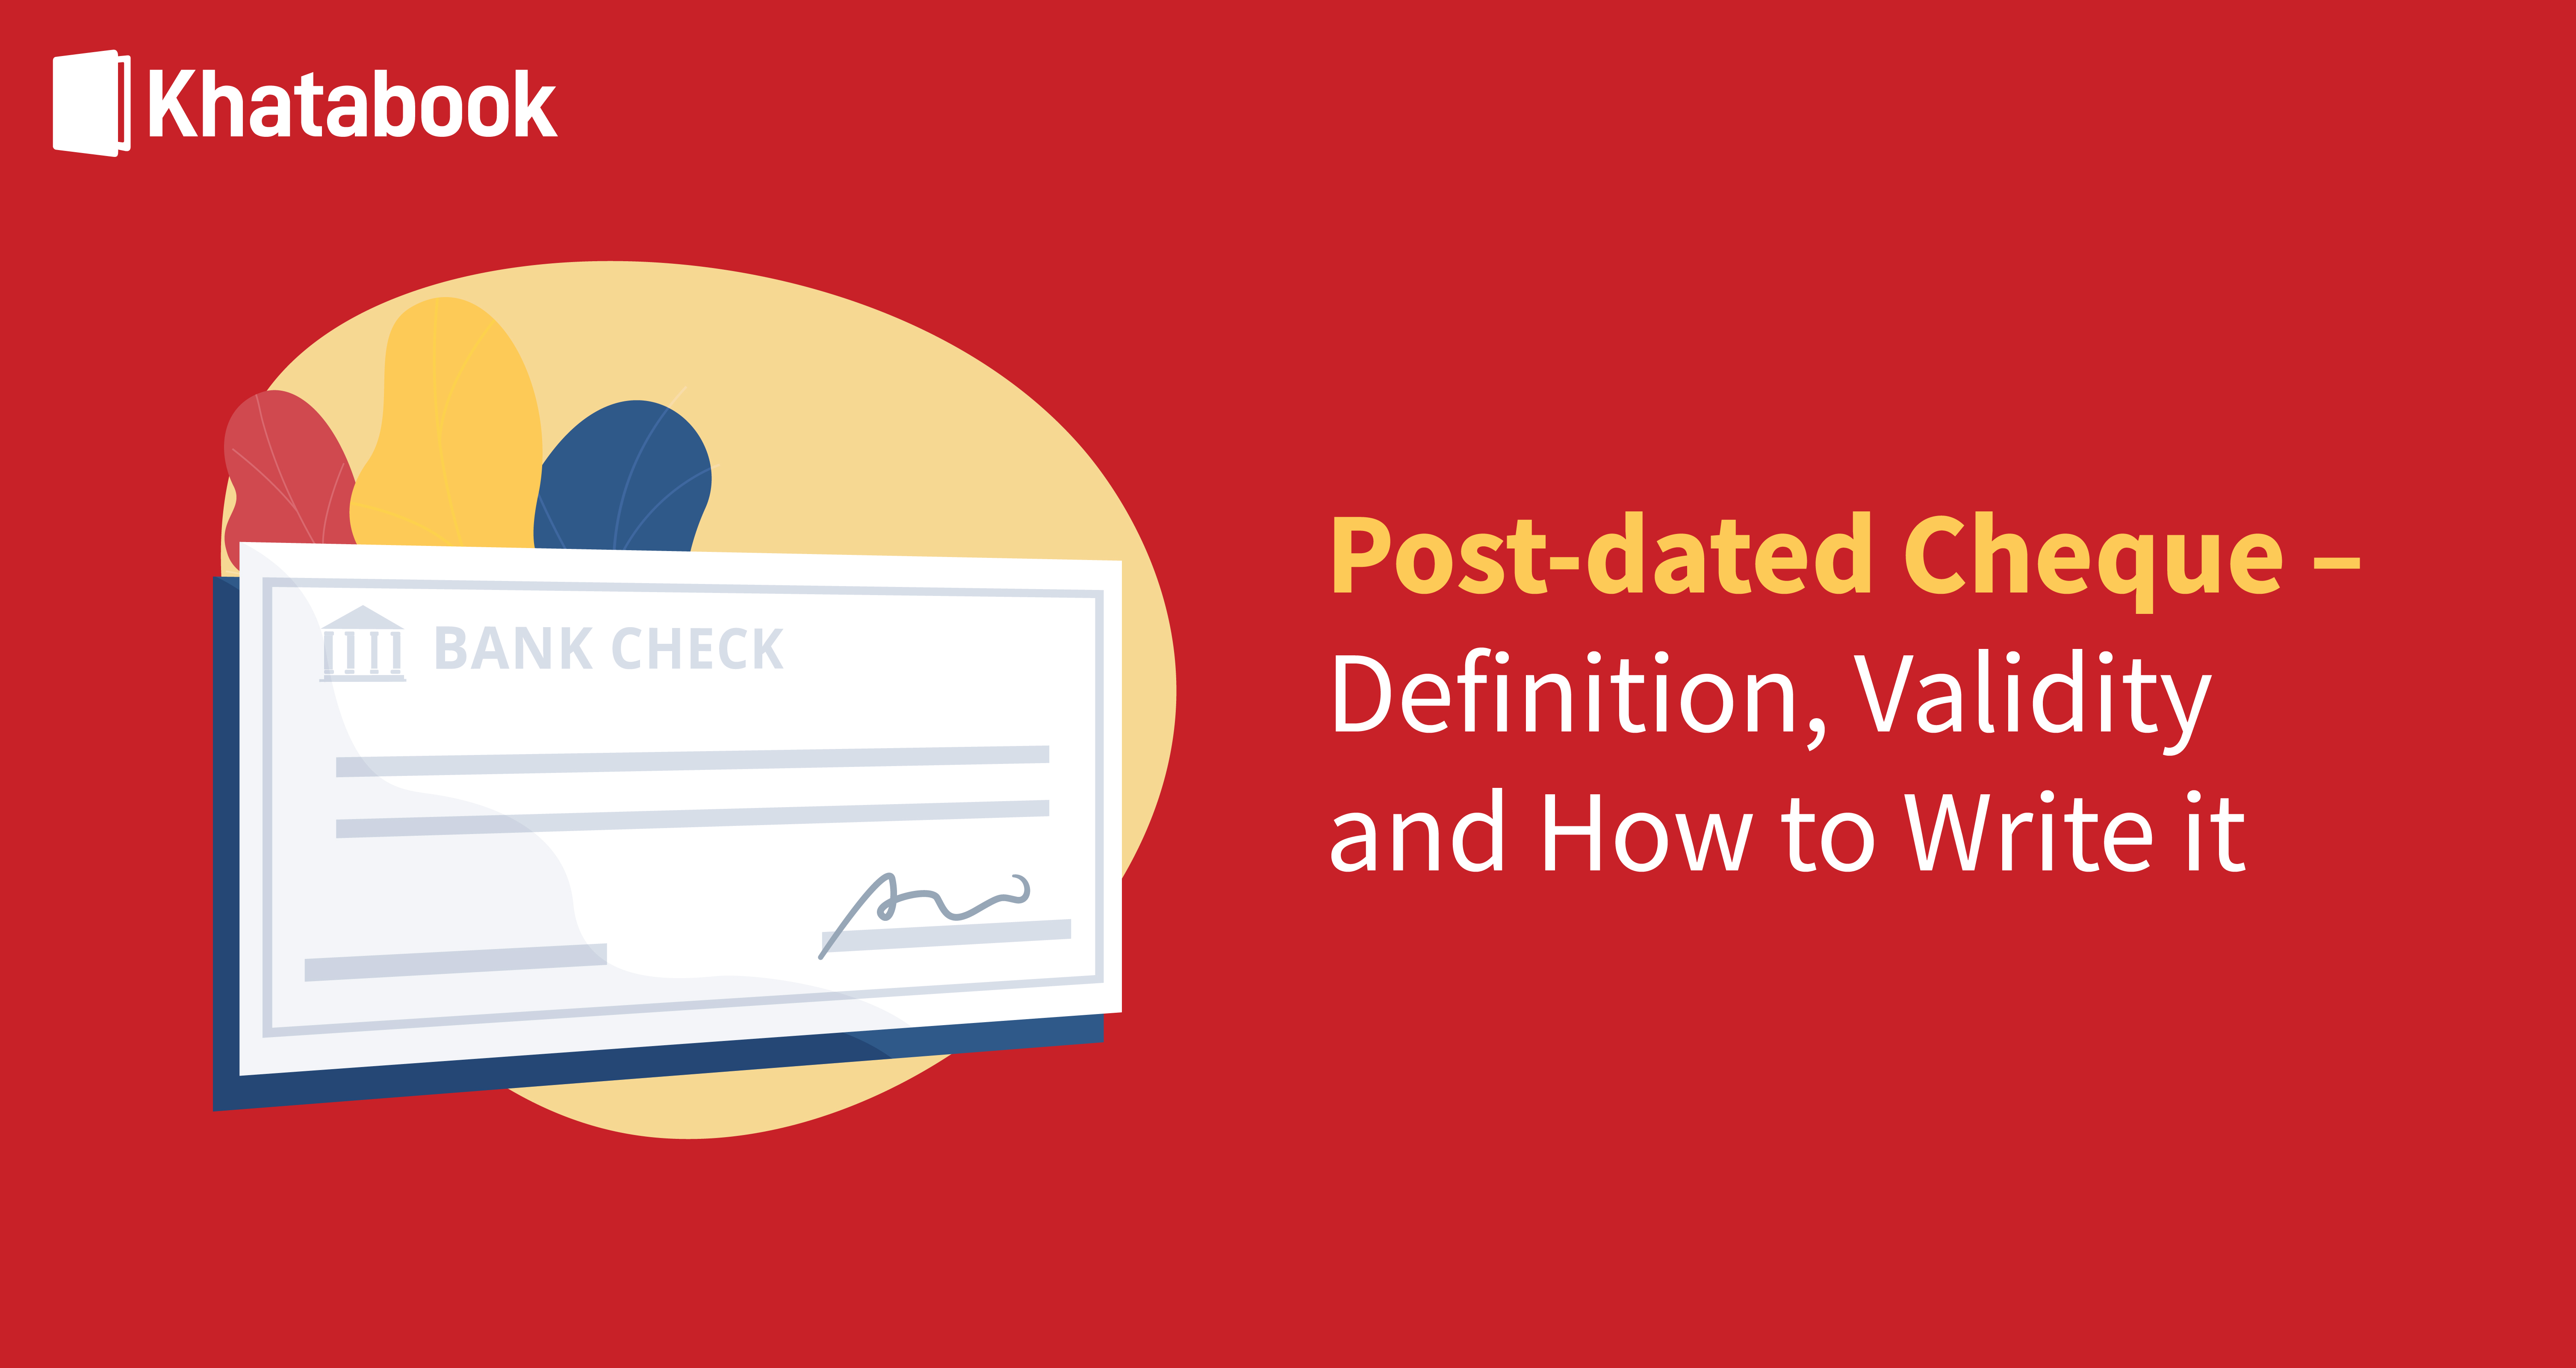 All You Need To Know About Post-dated Cheques